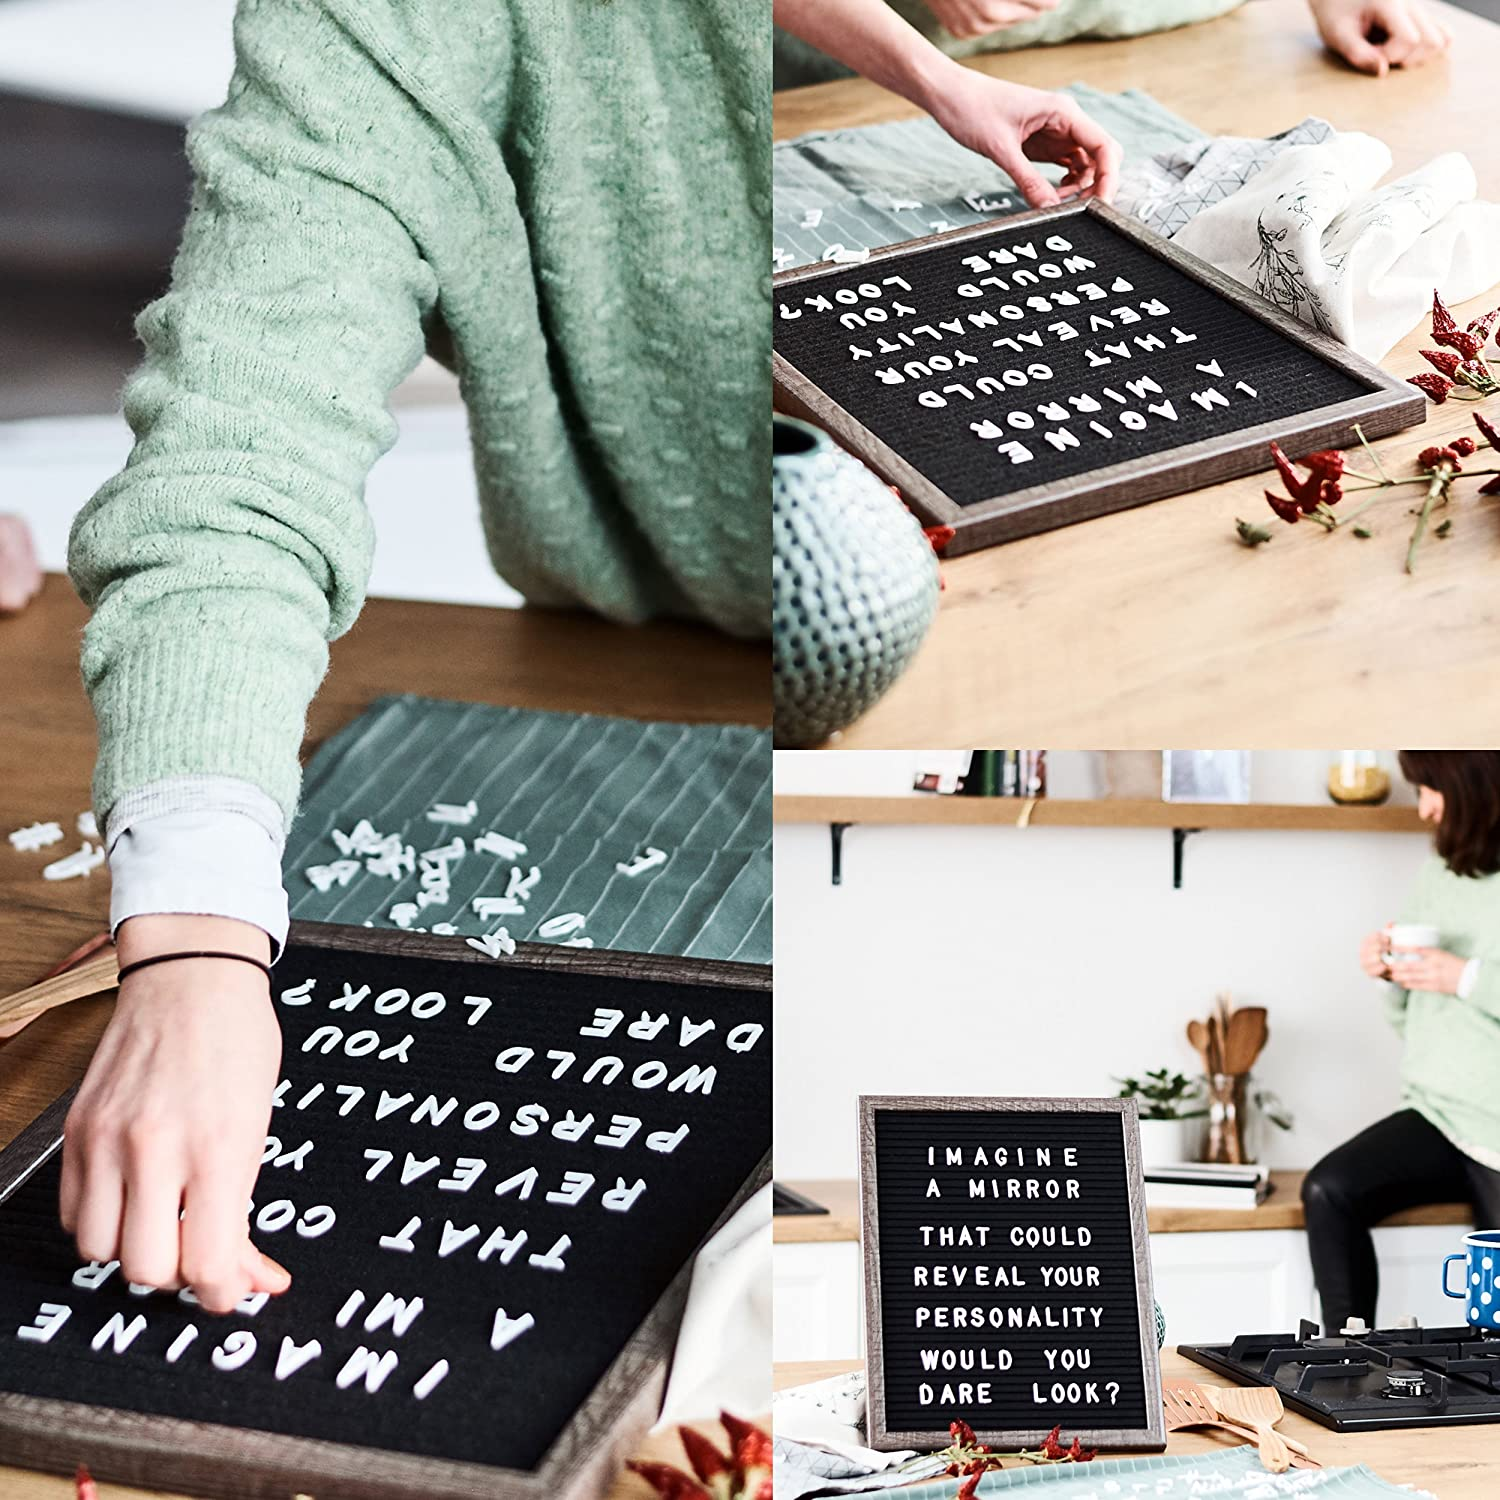 Large Wall Hanging or Table Stand Message System 387 White Characters Storage Bag Changeable Felt Letter Board w// Wood Frame Incl Letters Numbers 12 x 16